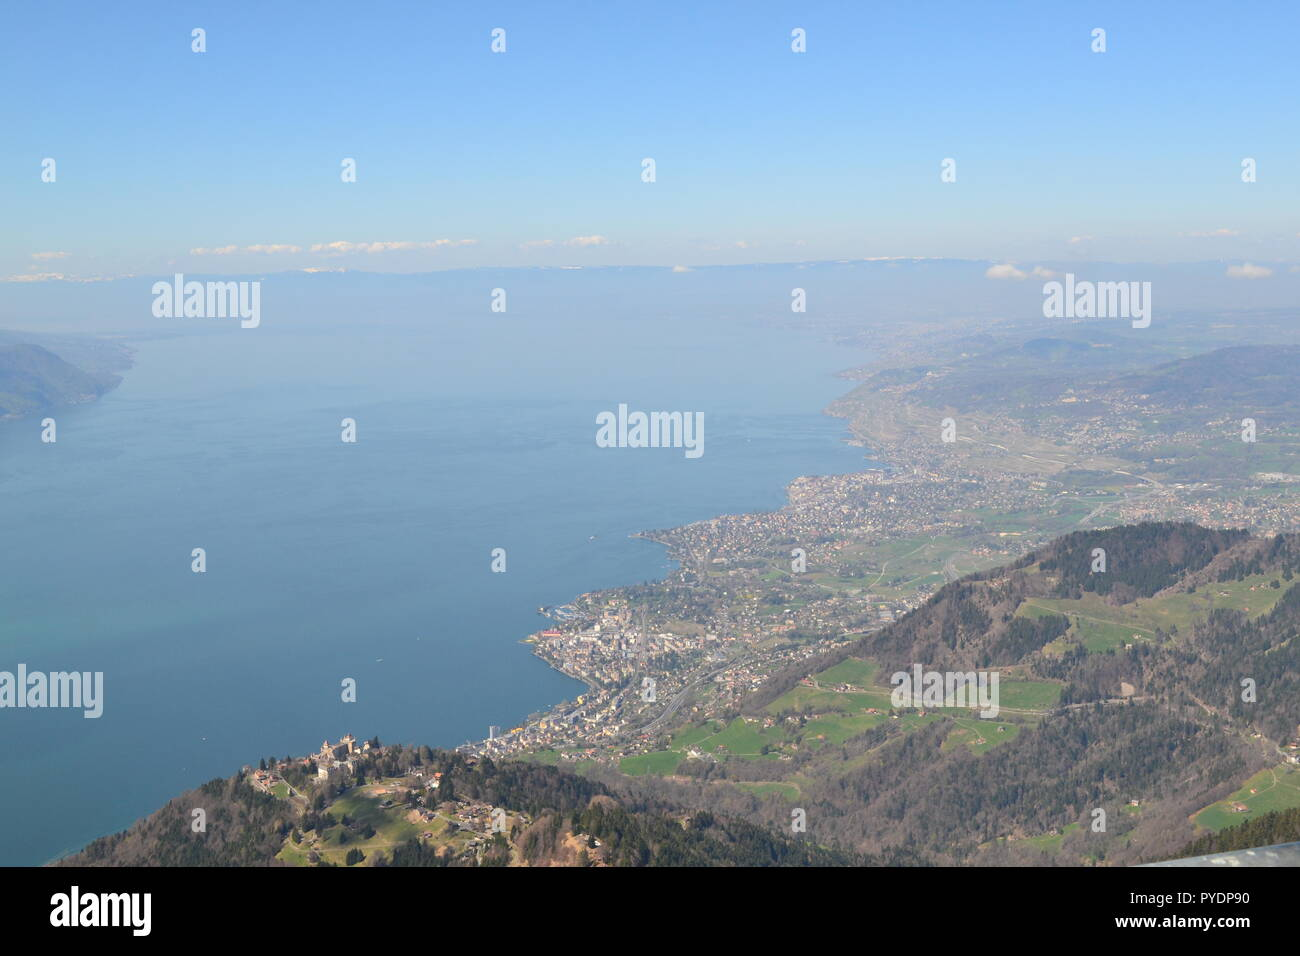 View over Lac Leman (Lake Geneva) from Les Rochers de Naye, near Montreux, Vaud, Switzerland, Europe - Stock Image